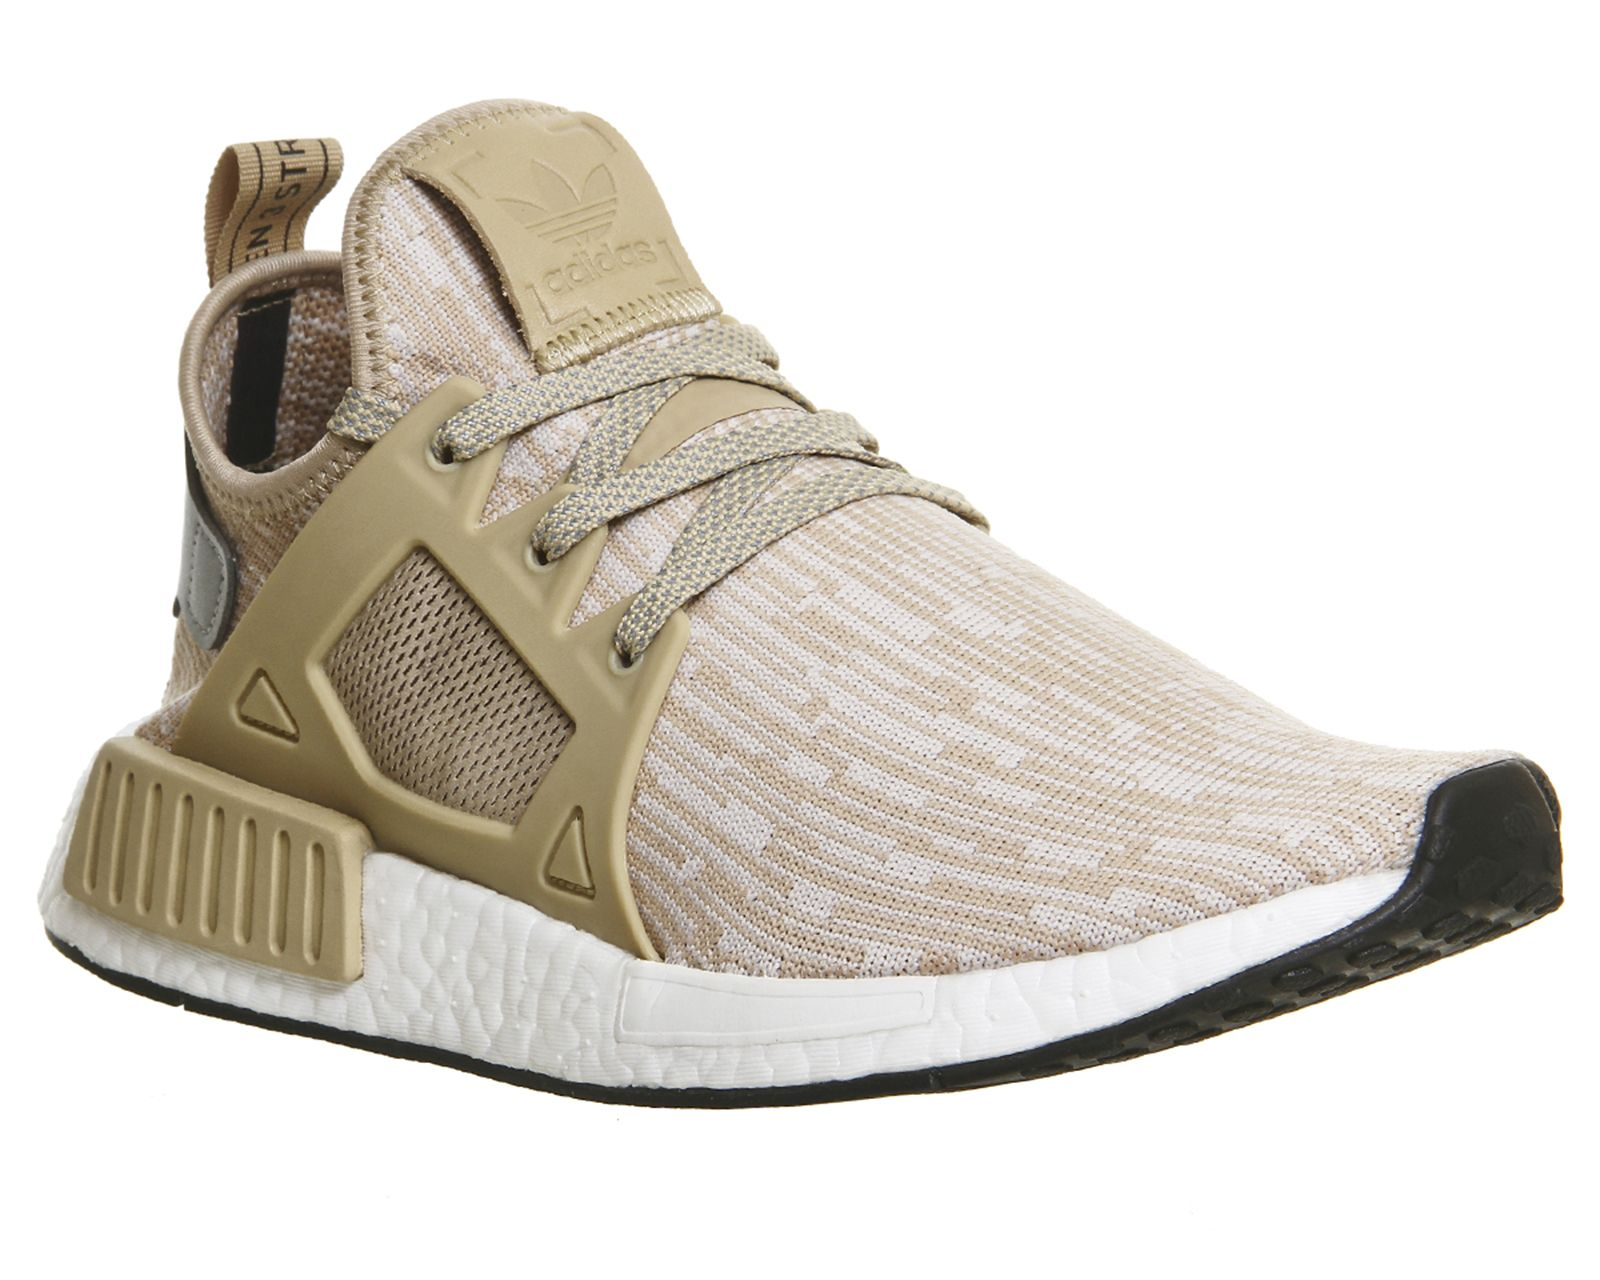 online retailer 93603 4ea6a Adidas Nmd Xr1 Linen Matte Silver | Shoes | Adidas, Adidas ...